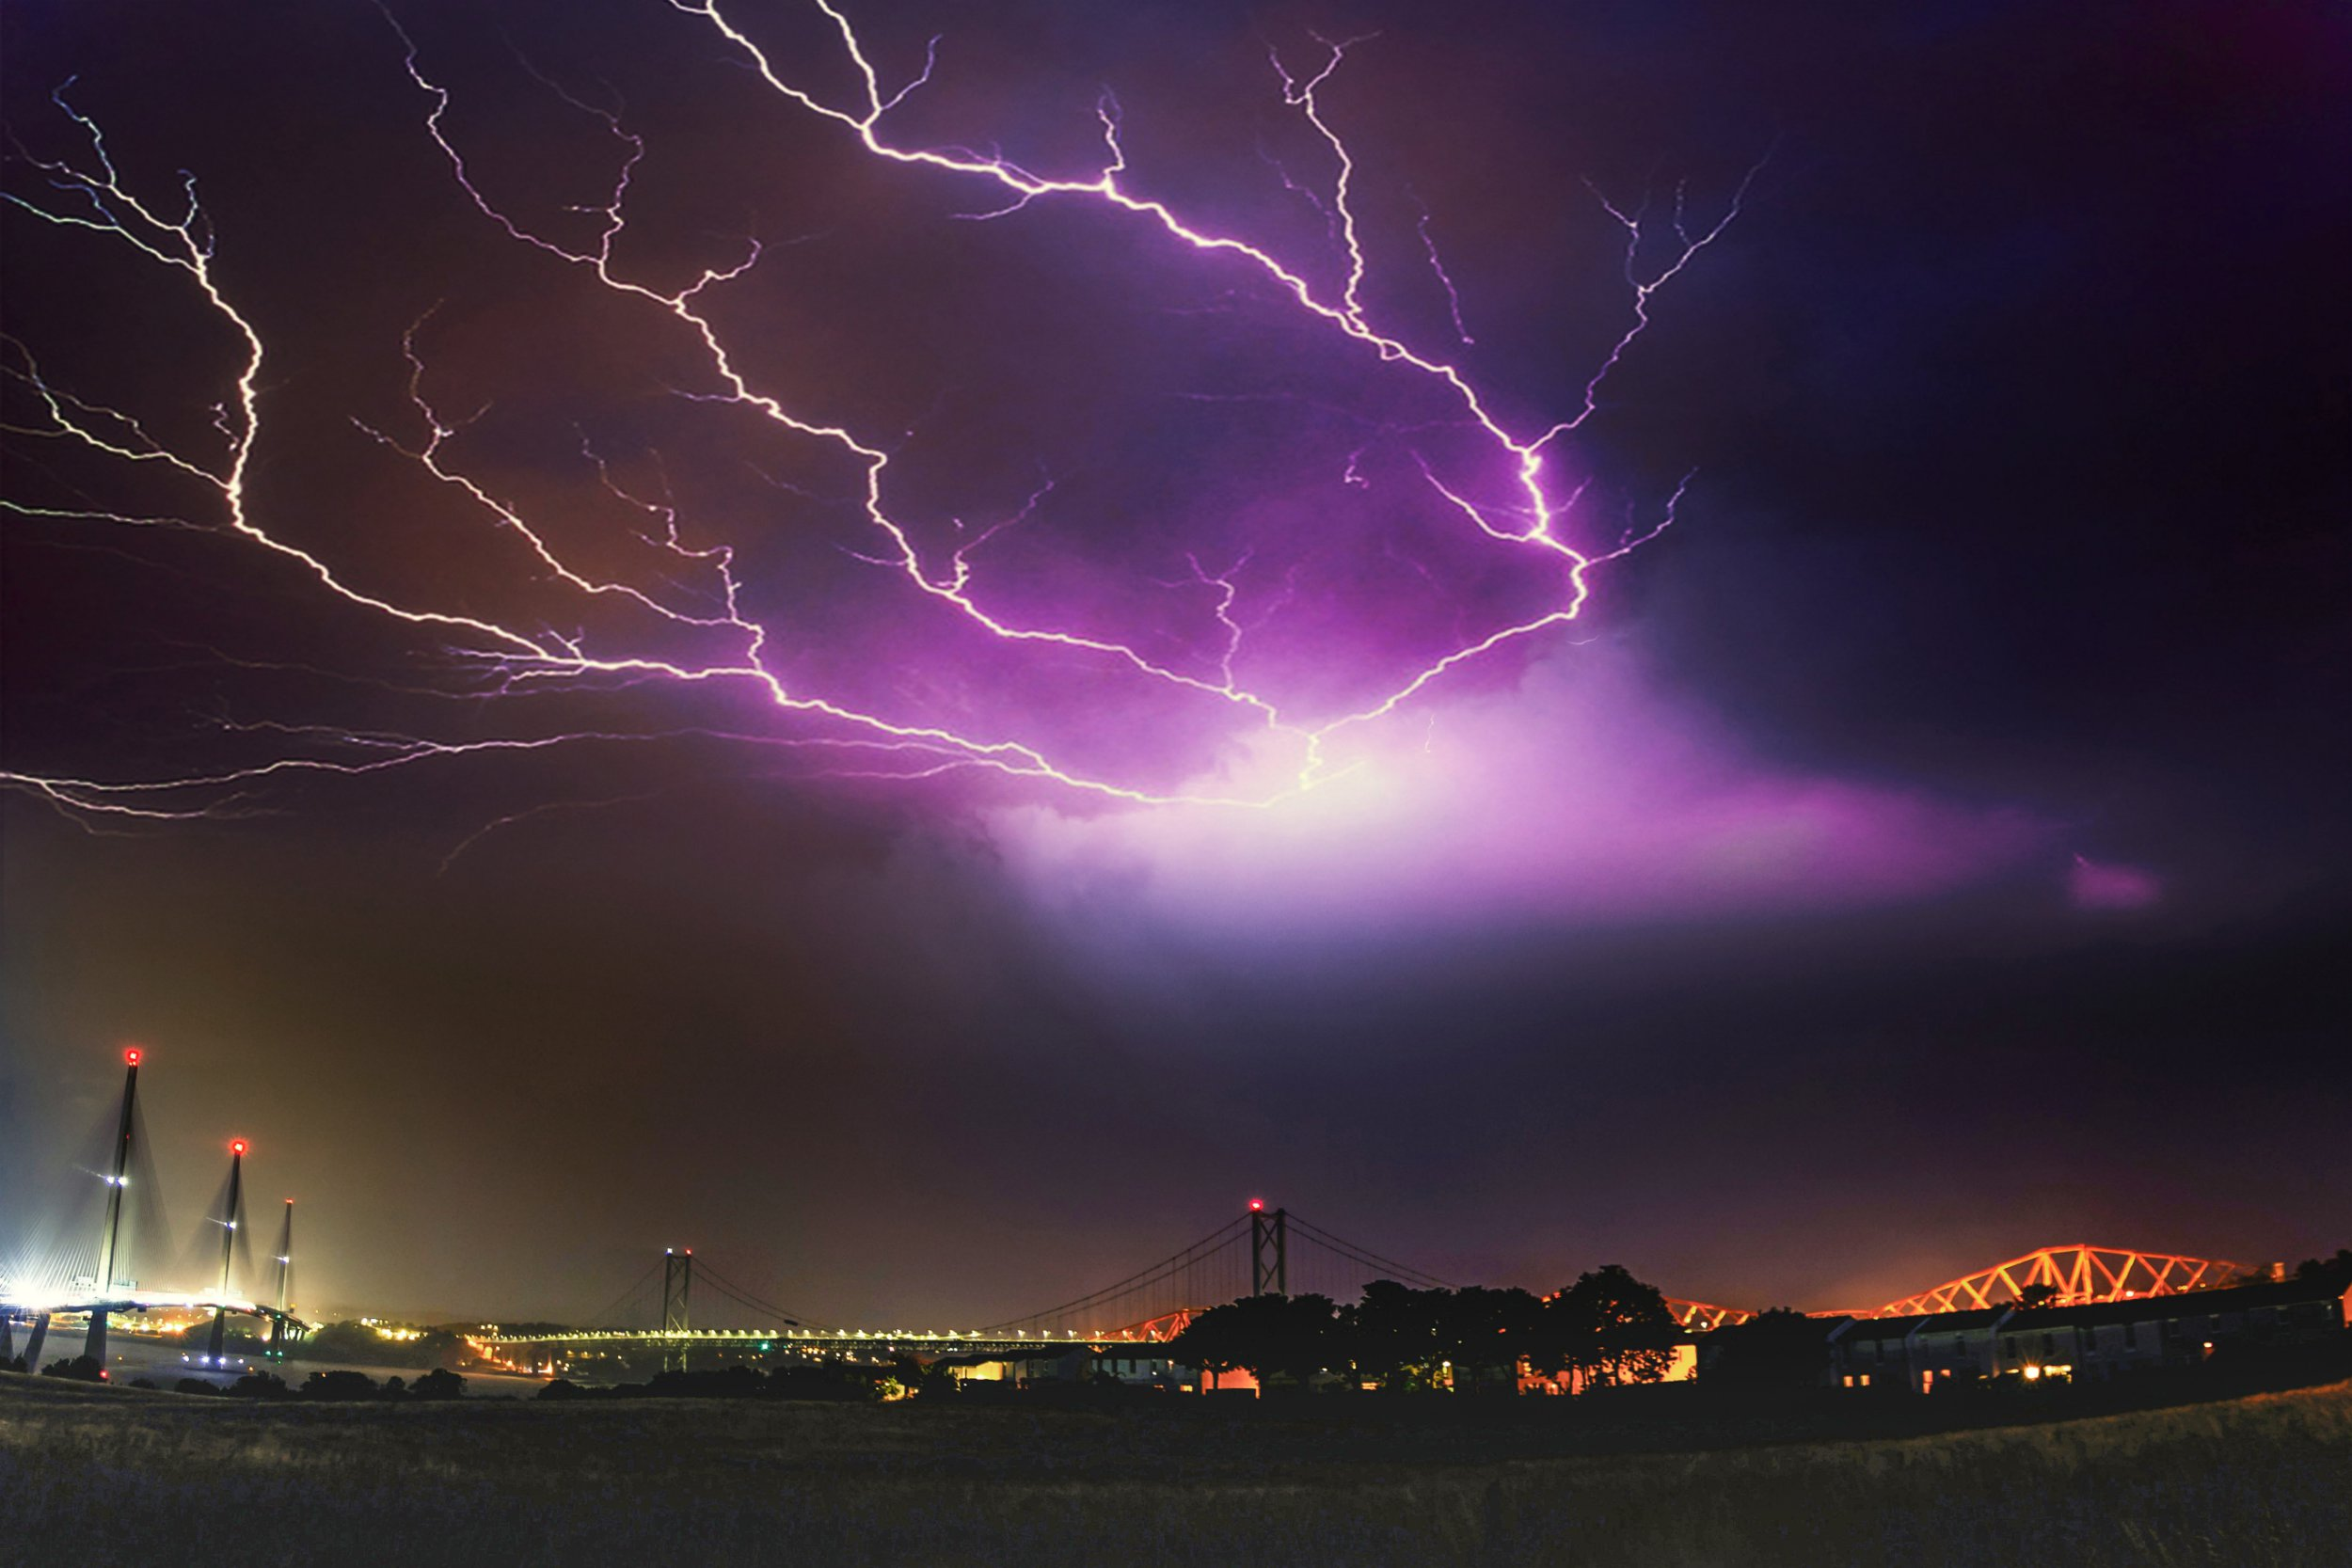 An amazing image of fork lightning above the three bridges over the Firth of Forth with the new Queensferry Crossing (left), The Forth Road Bridge (middle) and the Forth Rail Bridge (right). Sebastian Kuczynski from Edinburgh caught the strike while standing in South Queensferry at 1pm on July 26 2018